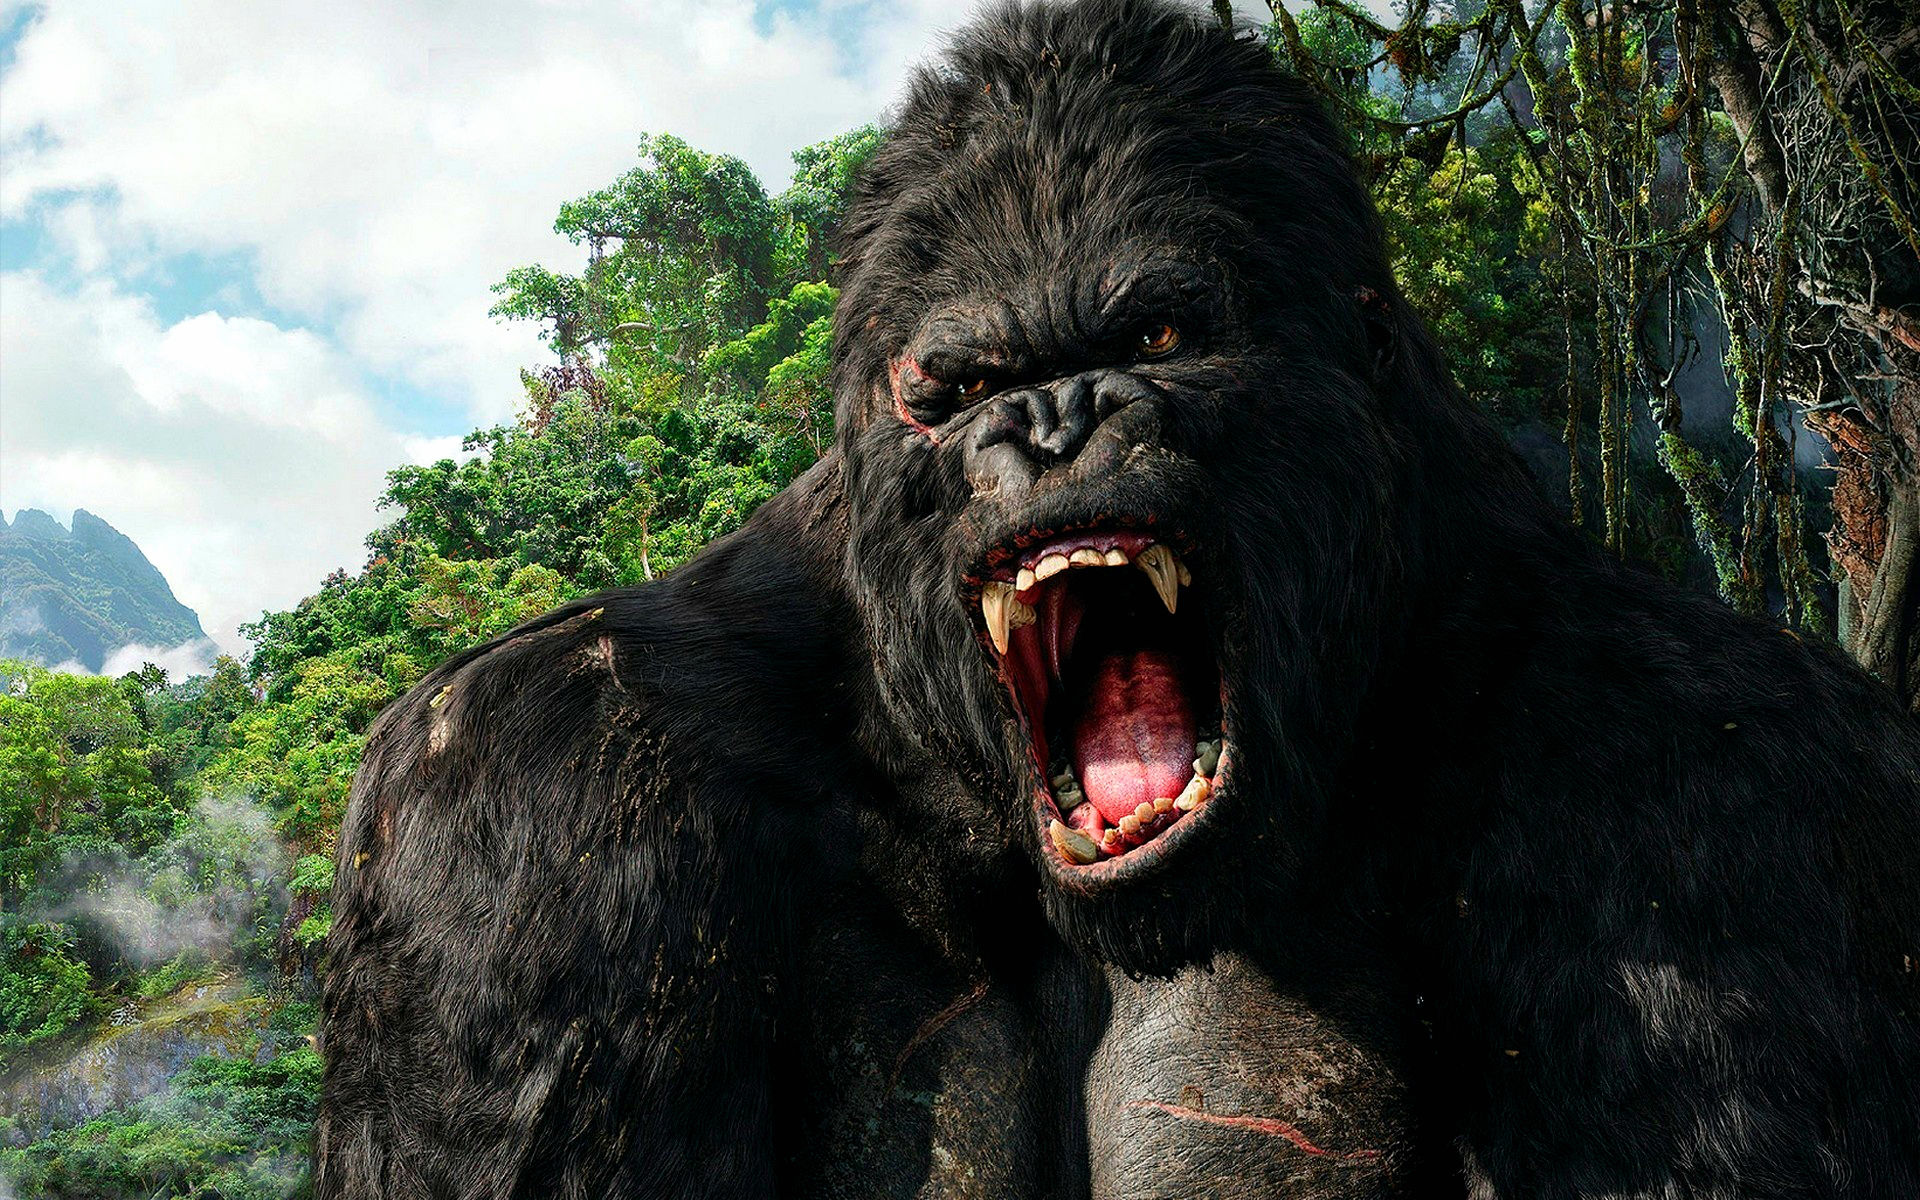 King kong 2005 full hd wallpaper and hintergrund - King kong 2005 hd wallpapers ...